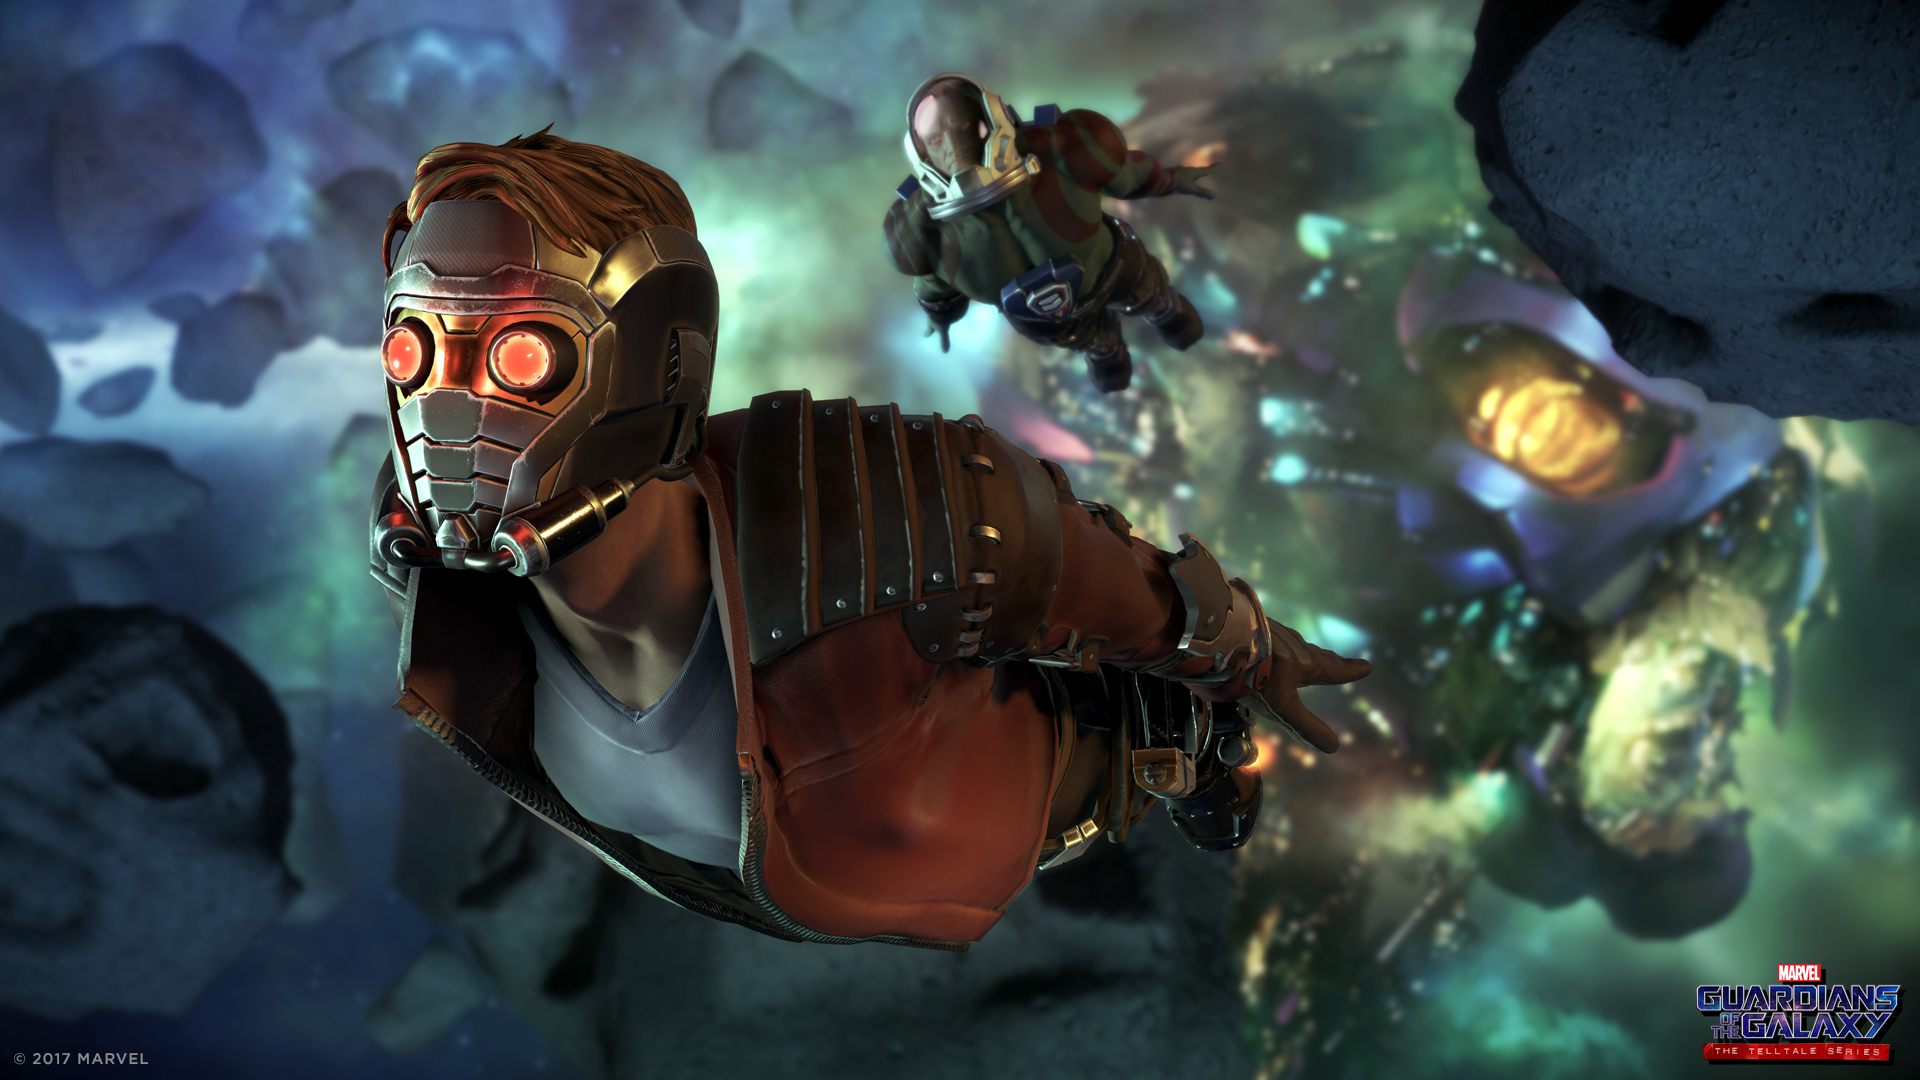 Starlord Flying